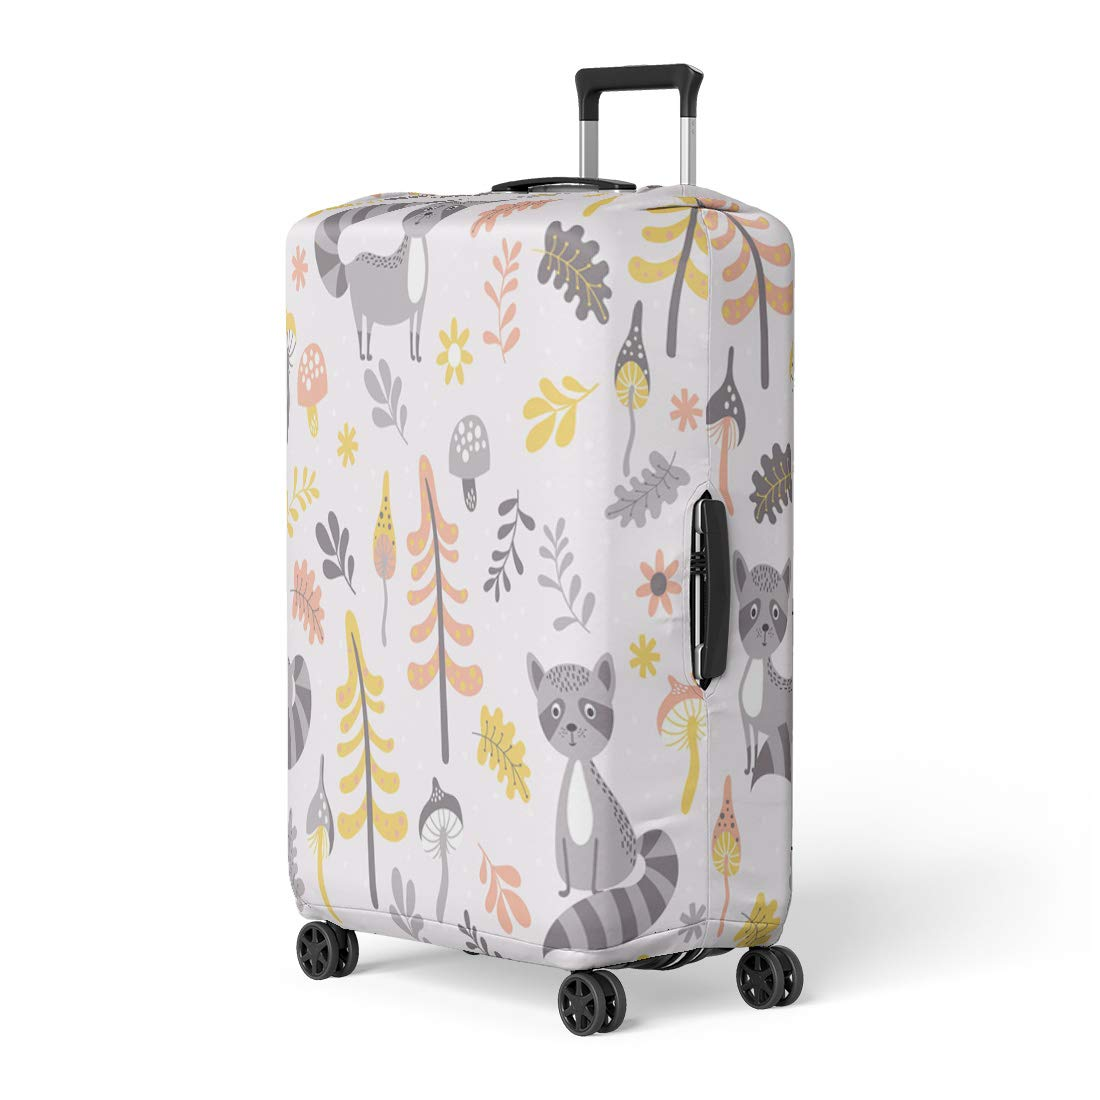 Semtomn Luggage Cover Bathing of Women Classic Swimsuit Vintage Bikini Collection Girl Travel Suitcase Cover Protector Baggage Case Fits 18-22 Inch